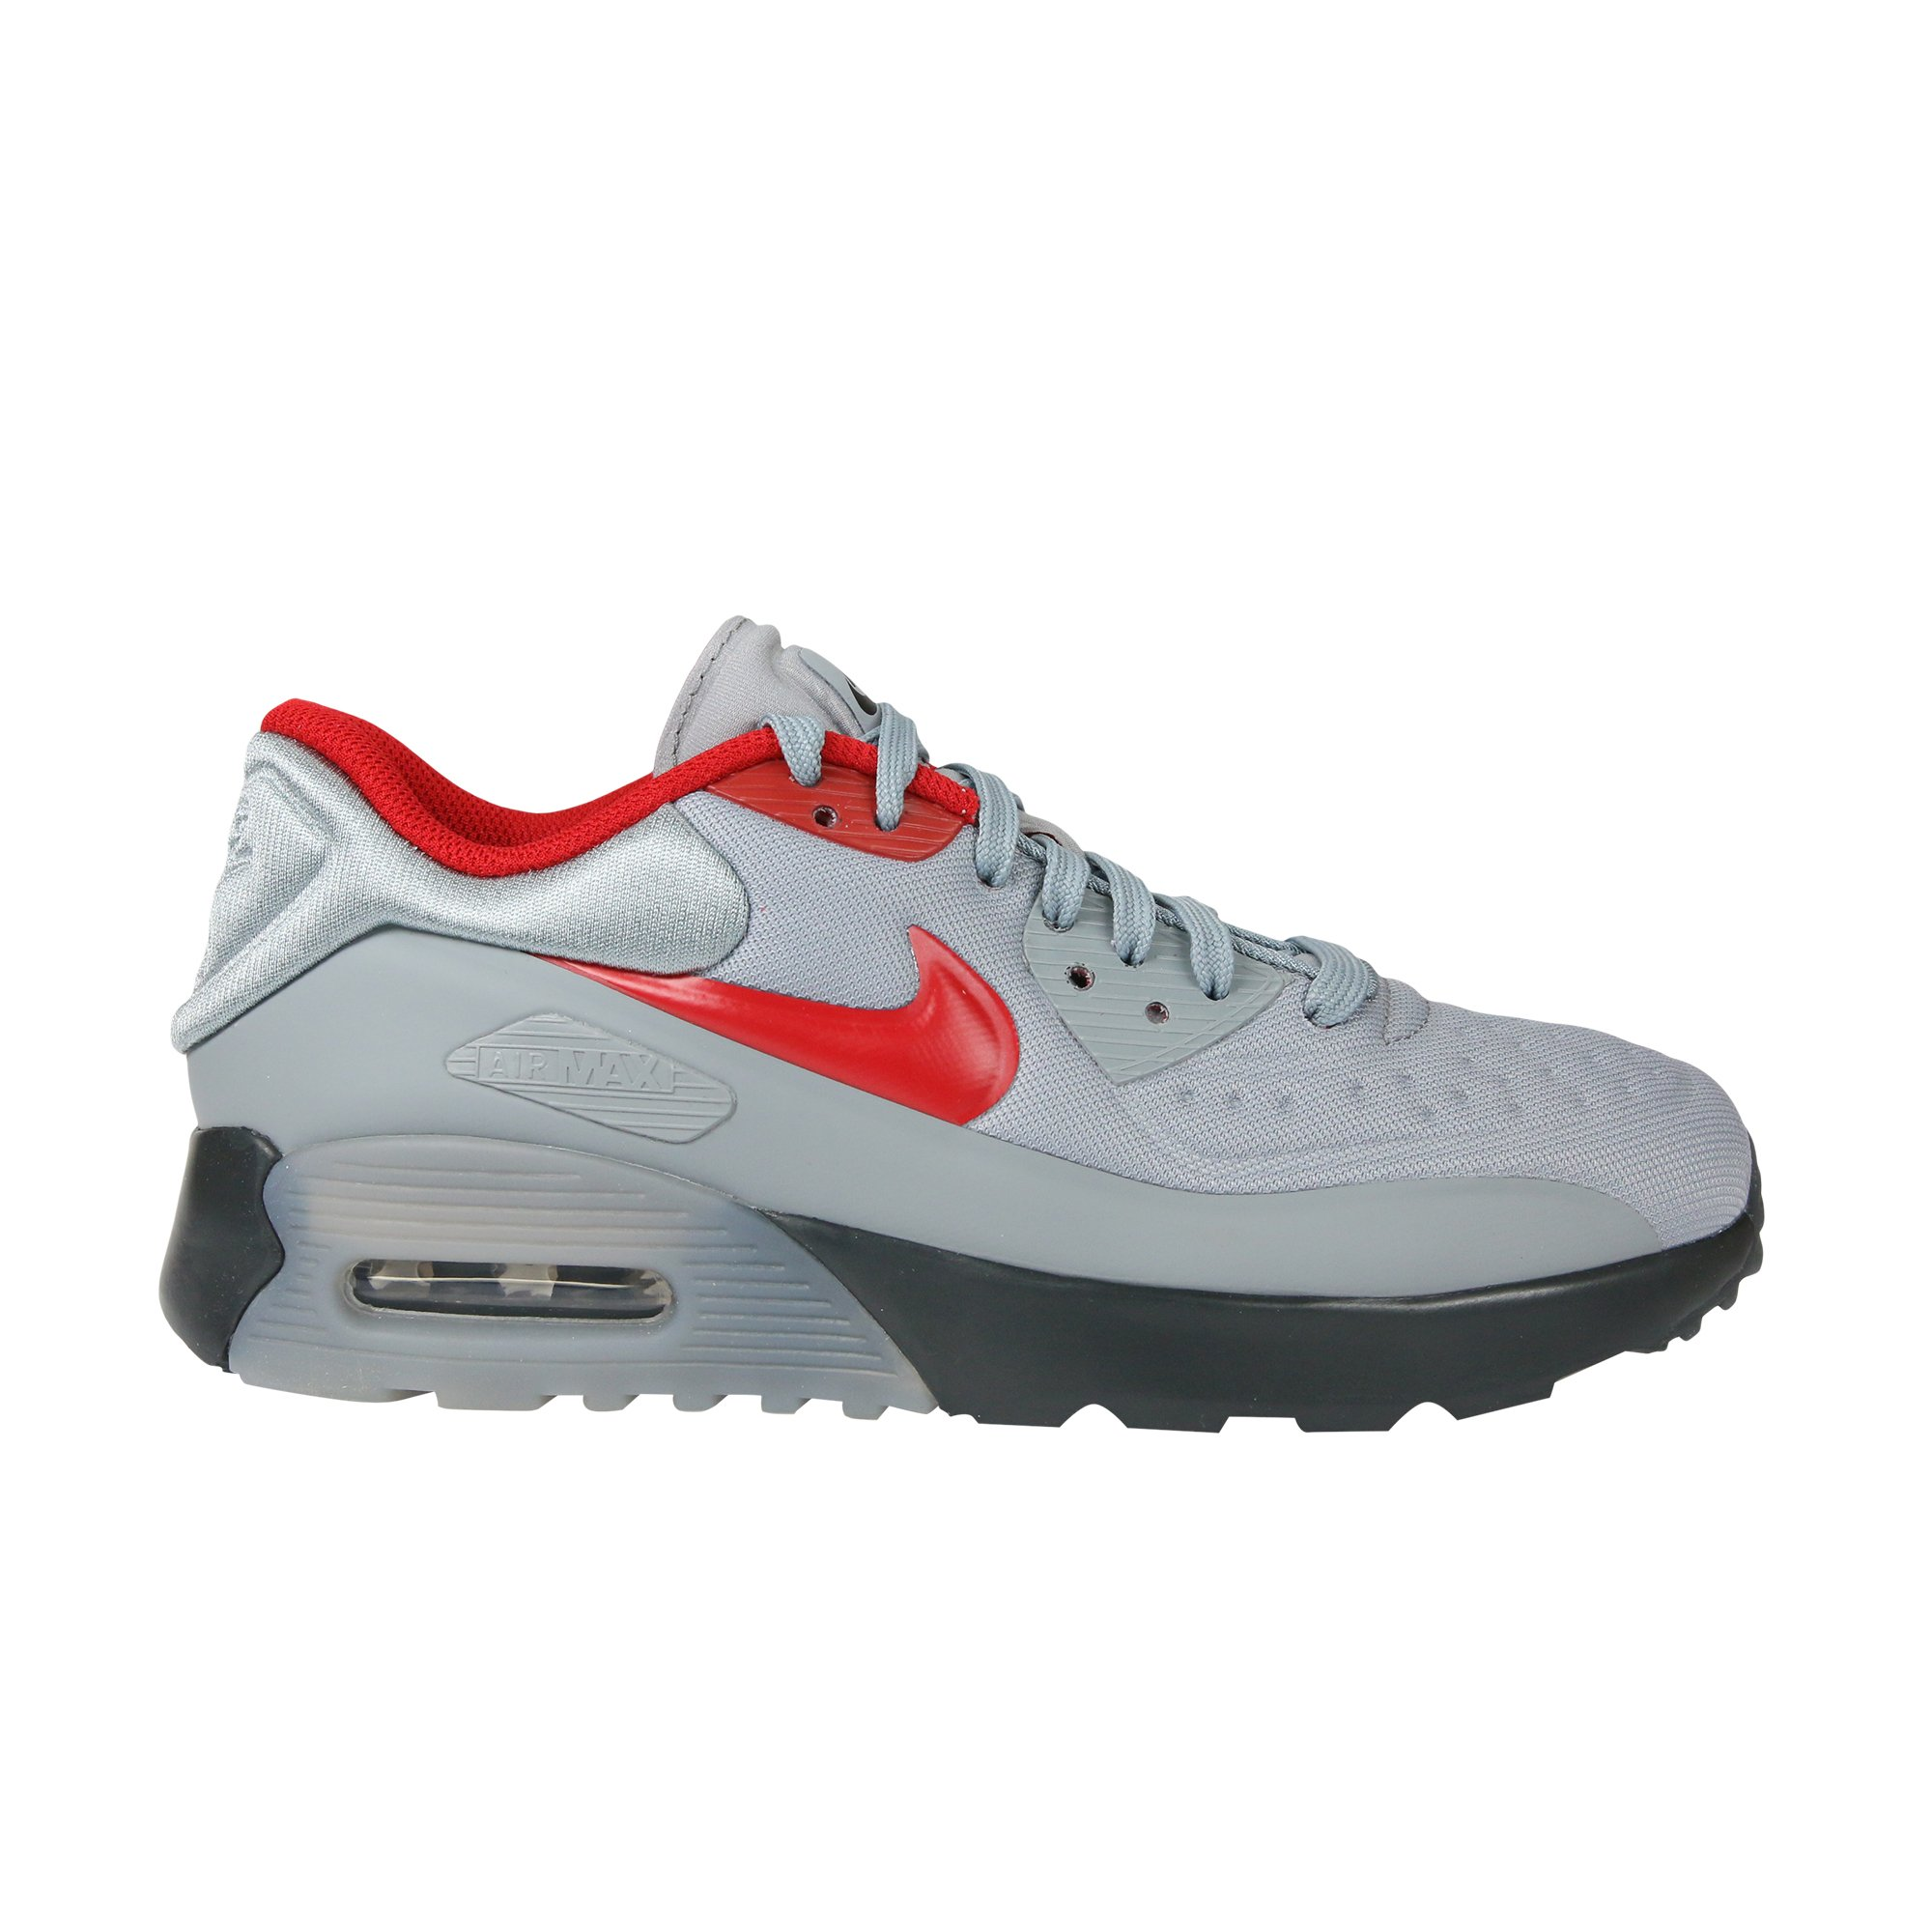 NIKE Kids Air Max 90 Ultra SE (GS) StealthGym Red Anthracite Running Shoe 4.5 Kids US